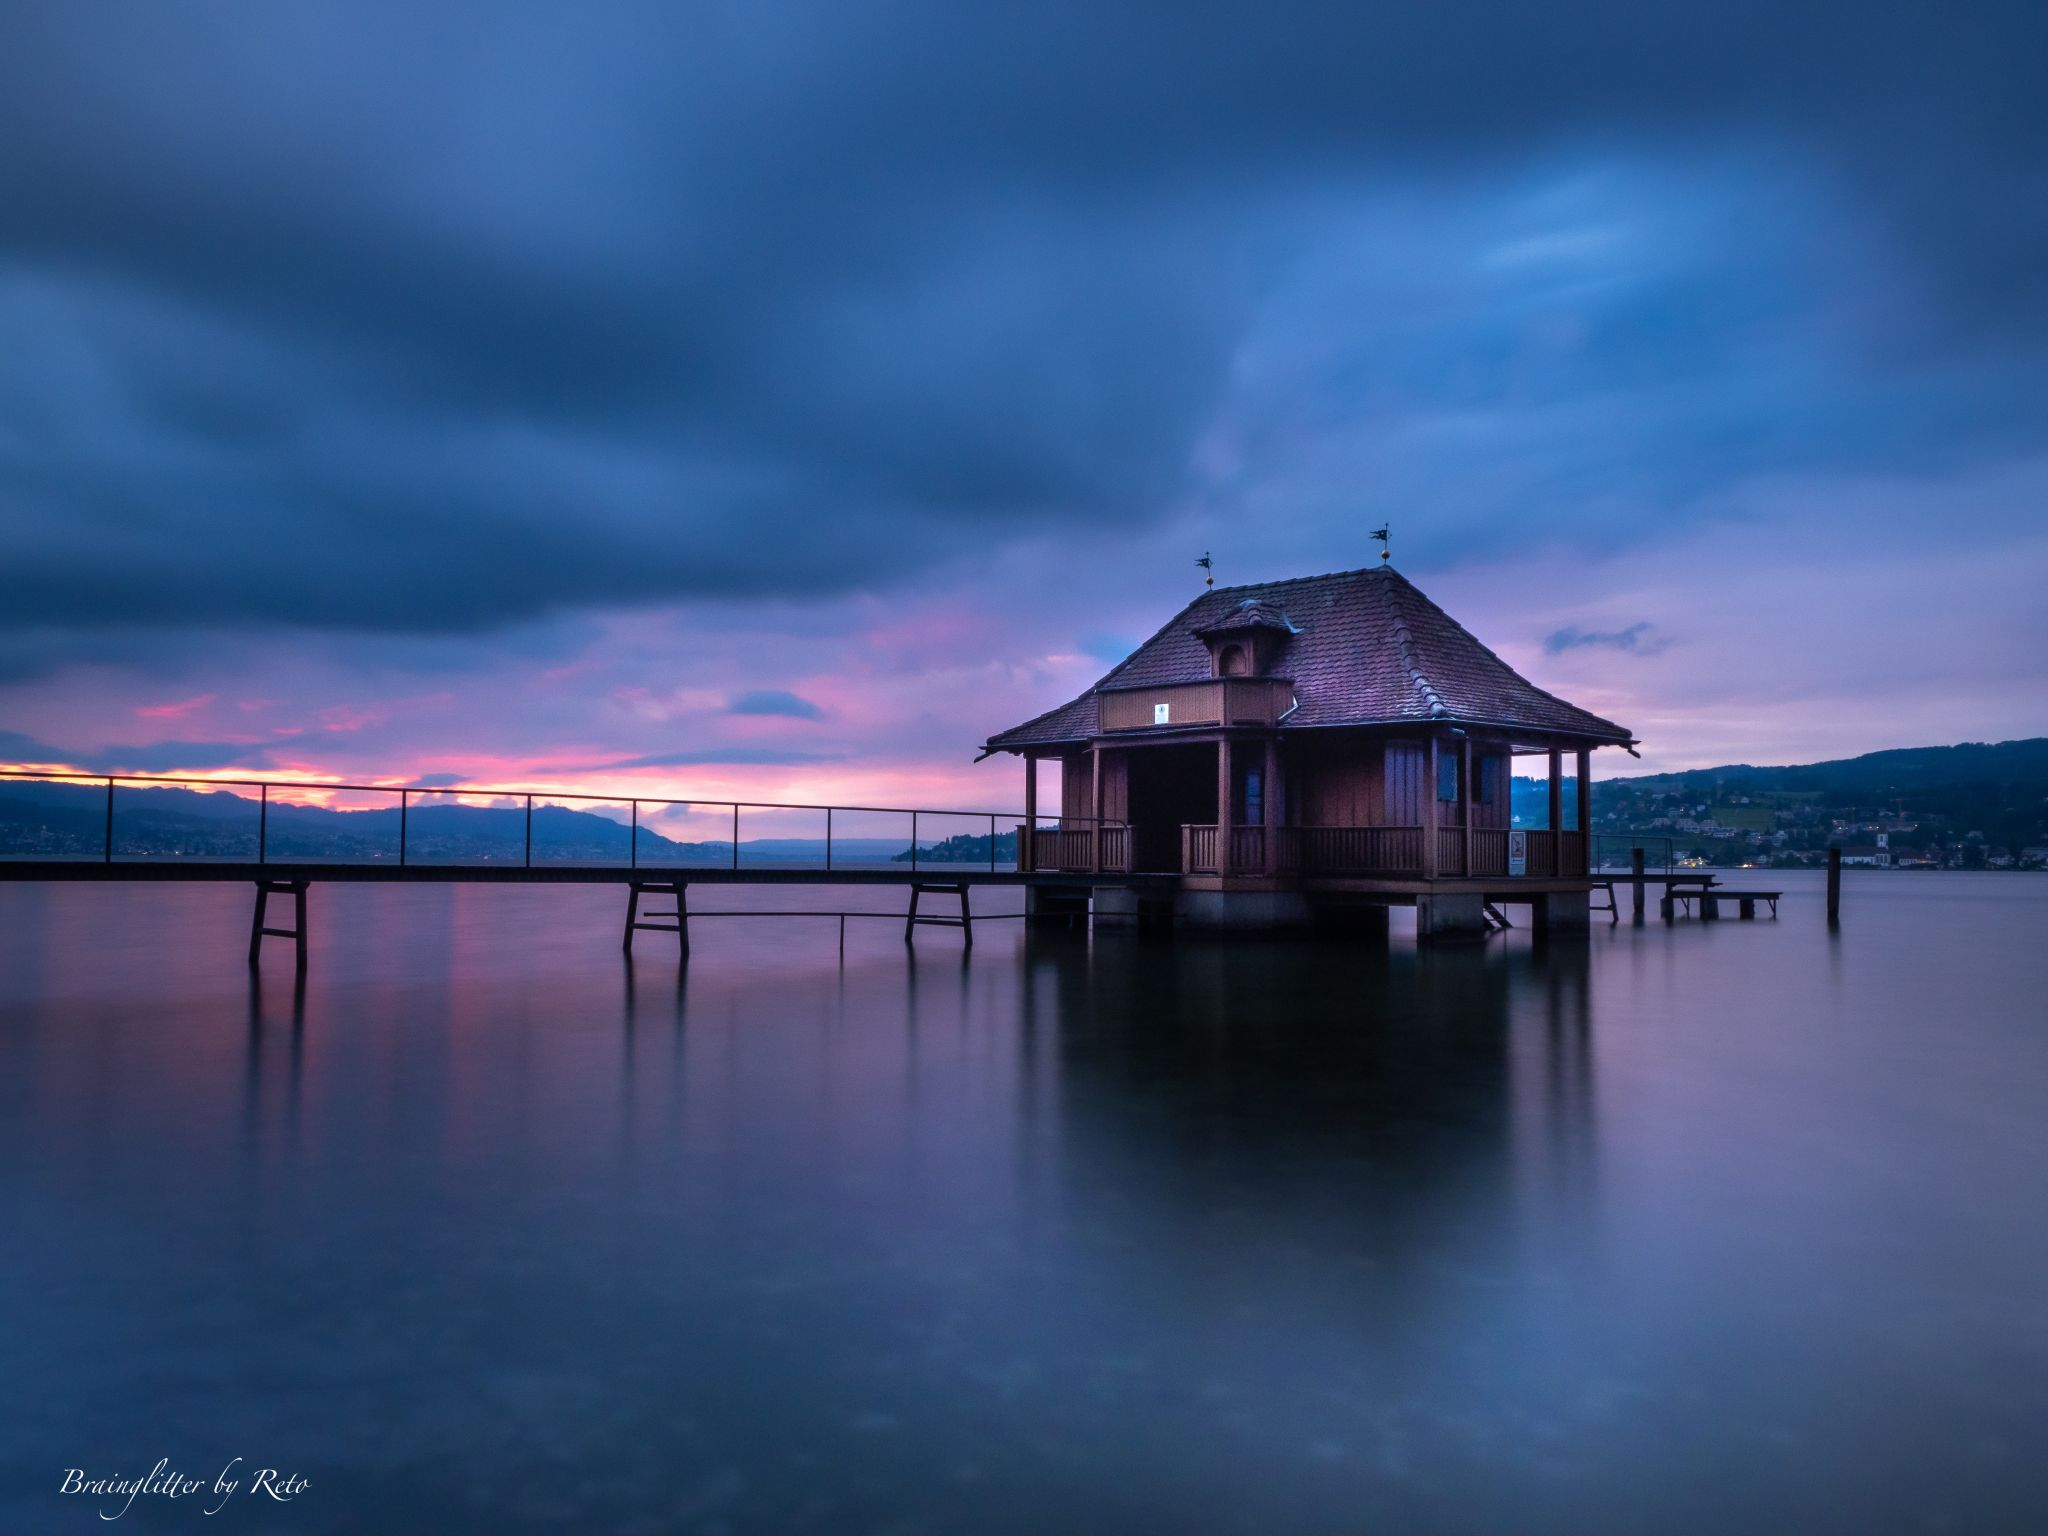 Bathhouse lake Zurich, Switzerland